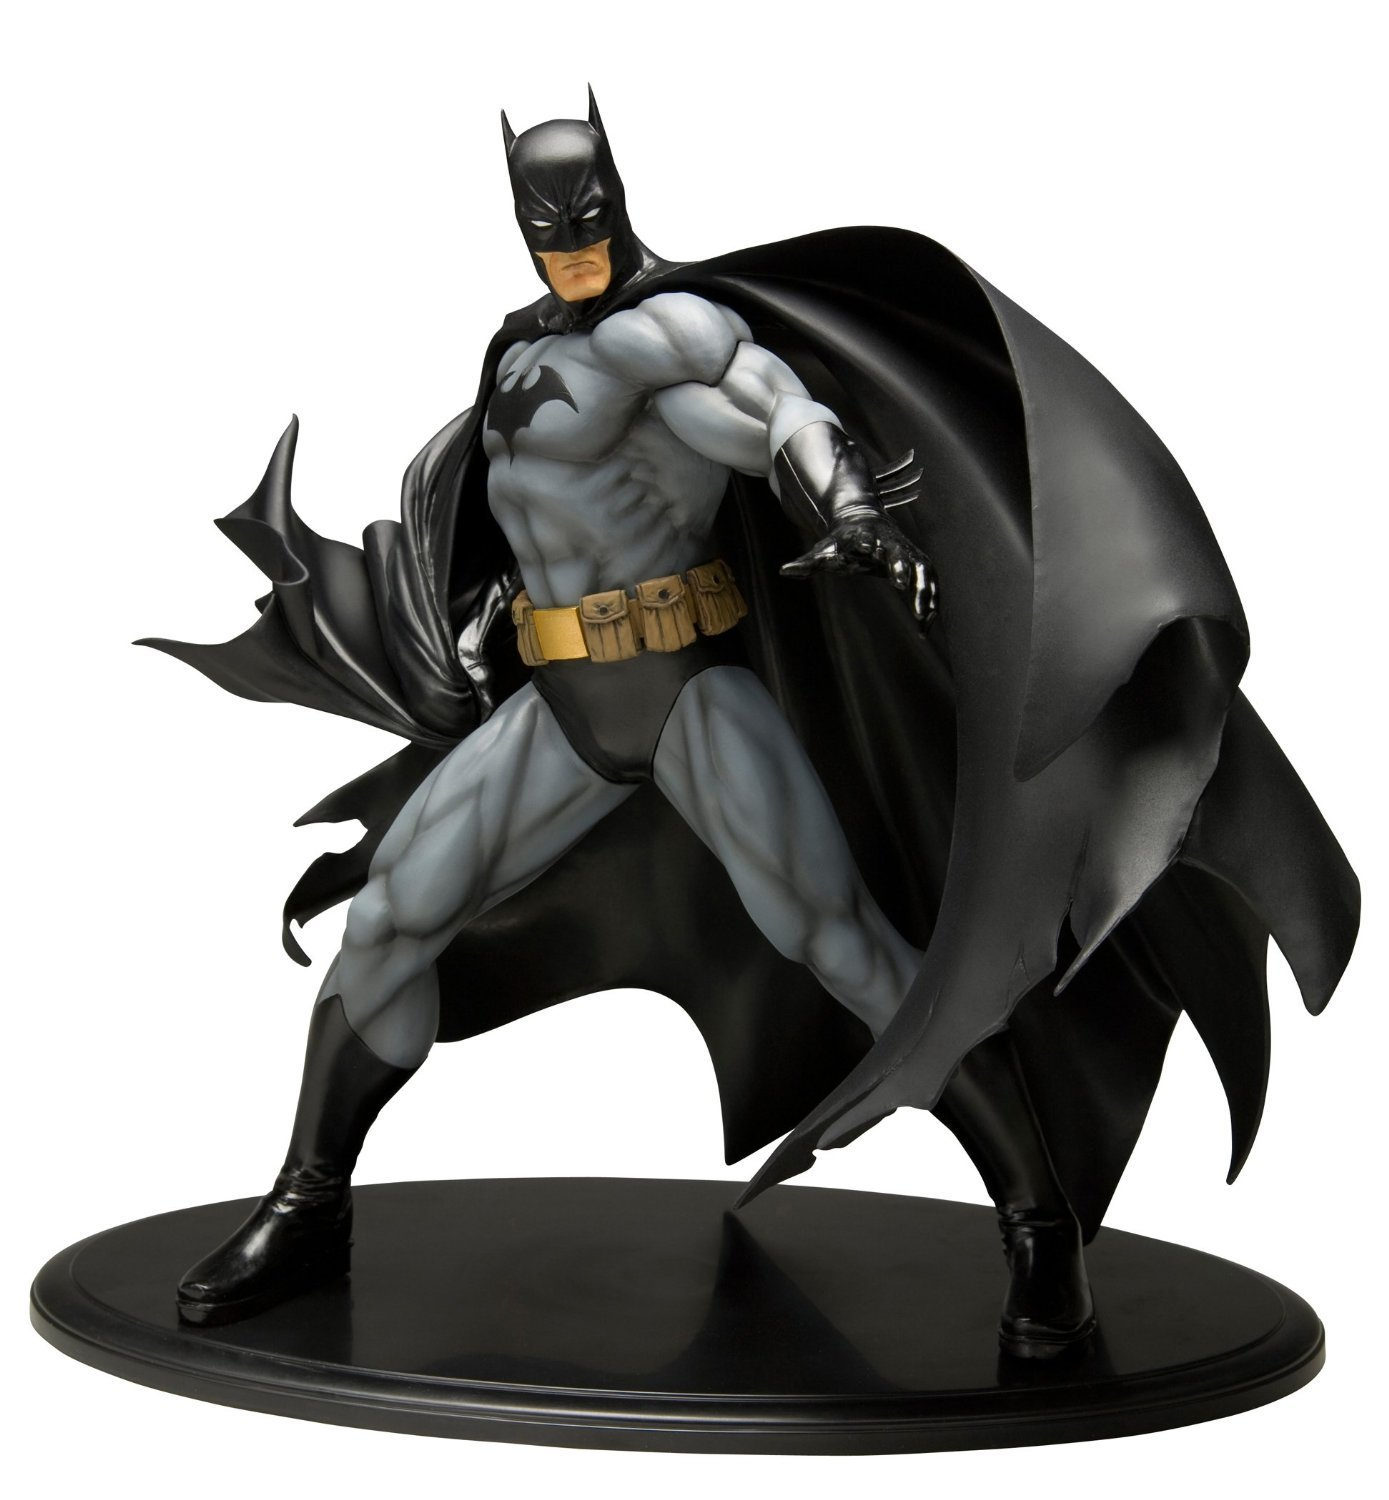 Jim Lee Artfx Batman Toy